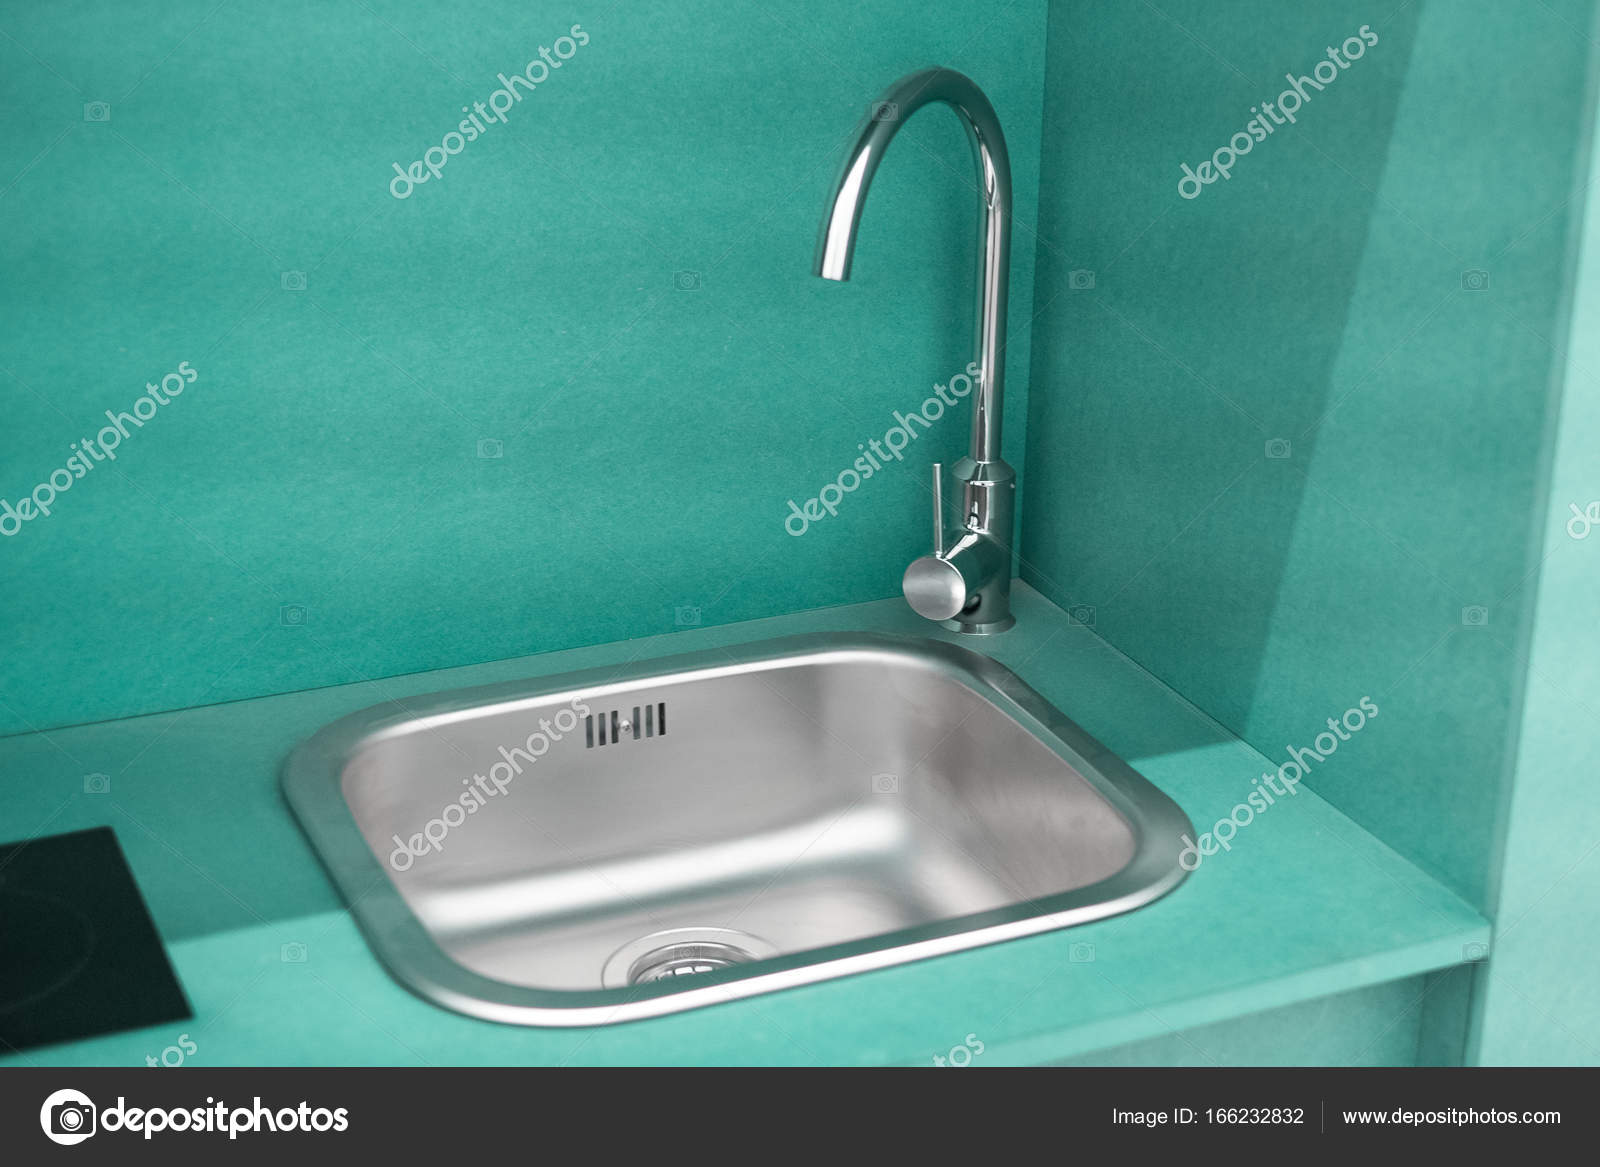 Small kitchen with sink — Stock Photo © marvlc #166232832